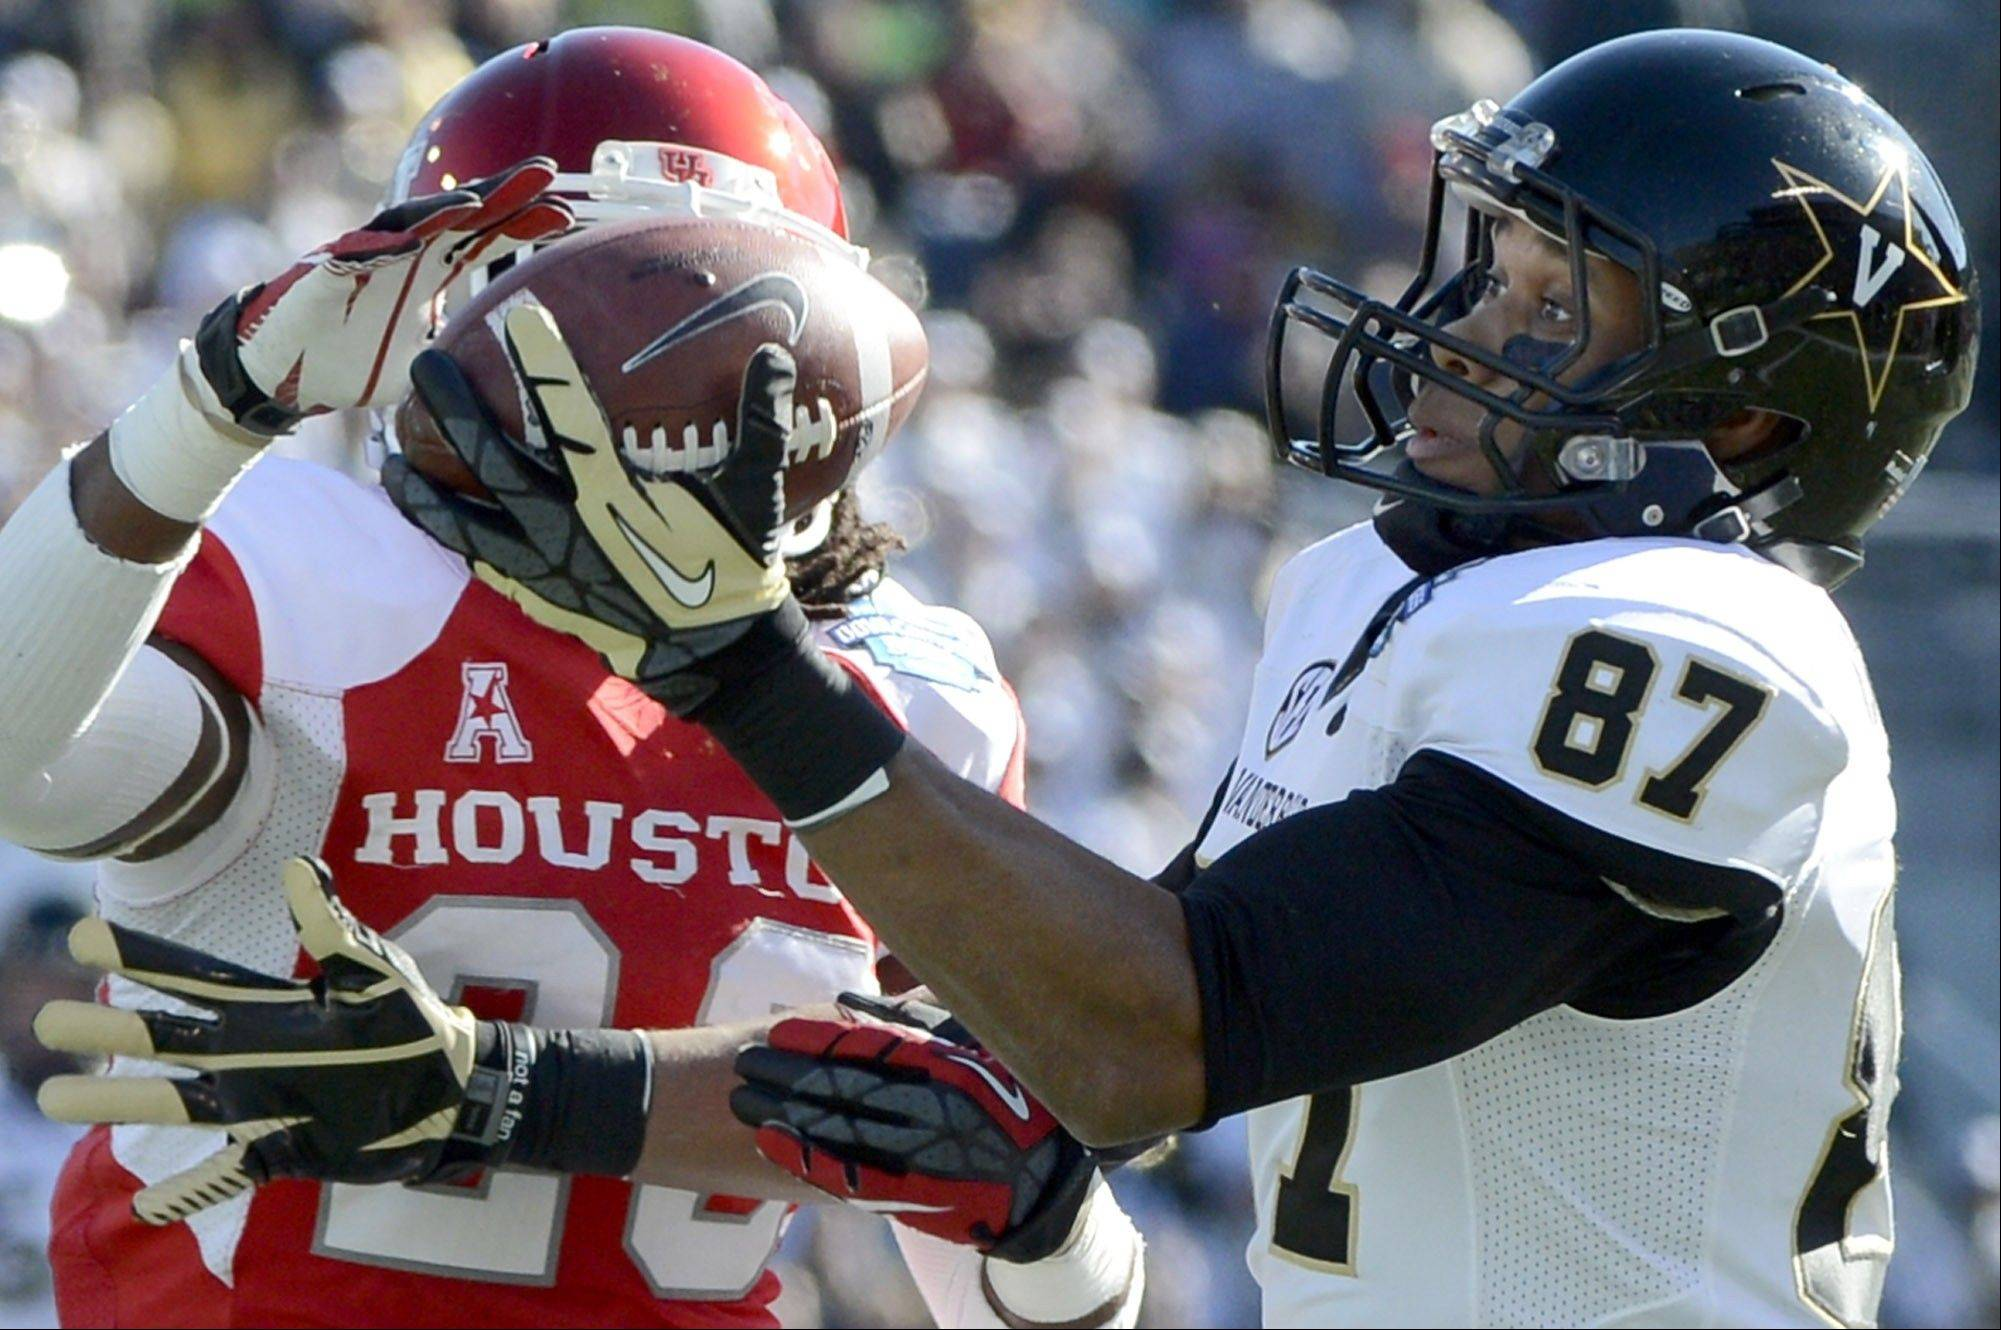 Vanderbilt wide receiver Jordan Matthews catches a second-quarter pass in front of Houston defensive back Trevon Stewart during the Compass Bowl Saturday in Alabama.